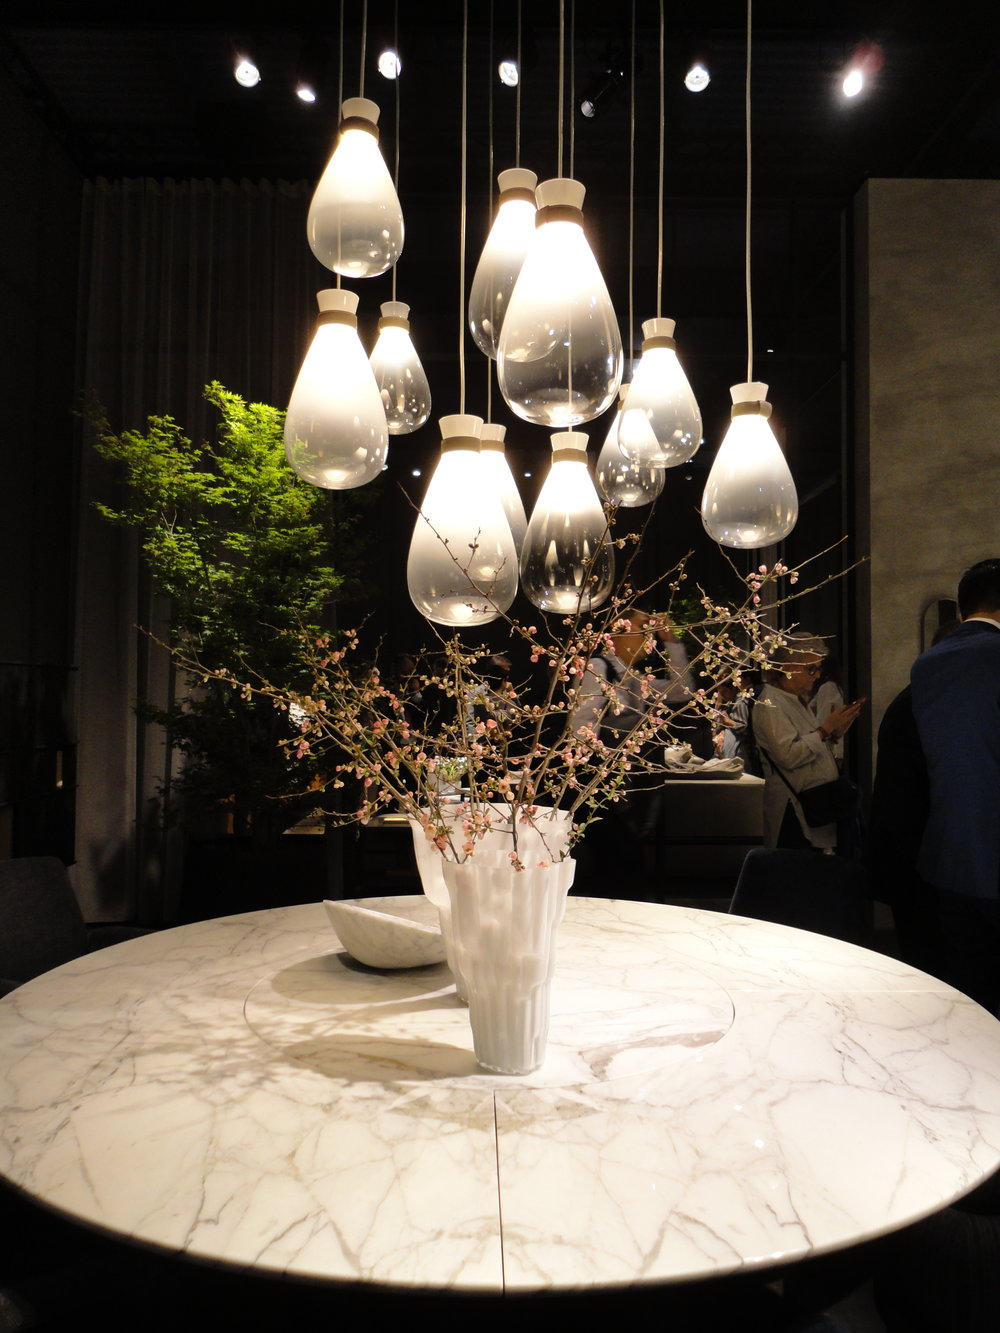 The 'Soffi' pendants by GamFratesi on display at Poltrona Frau